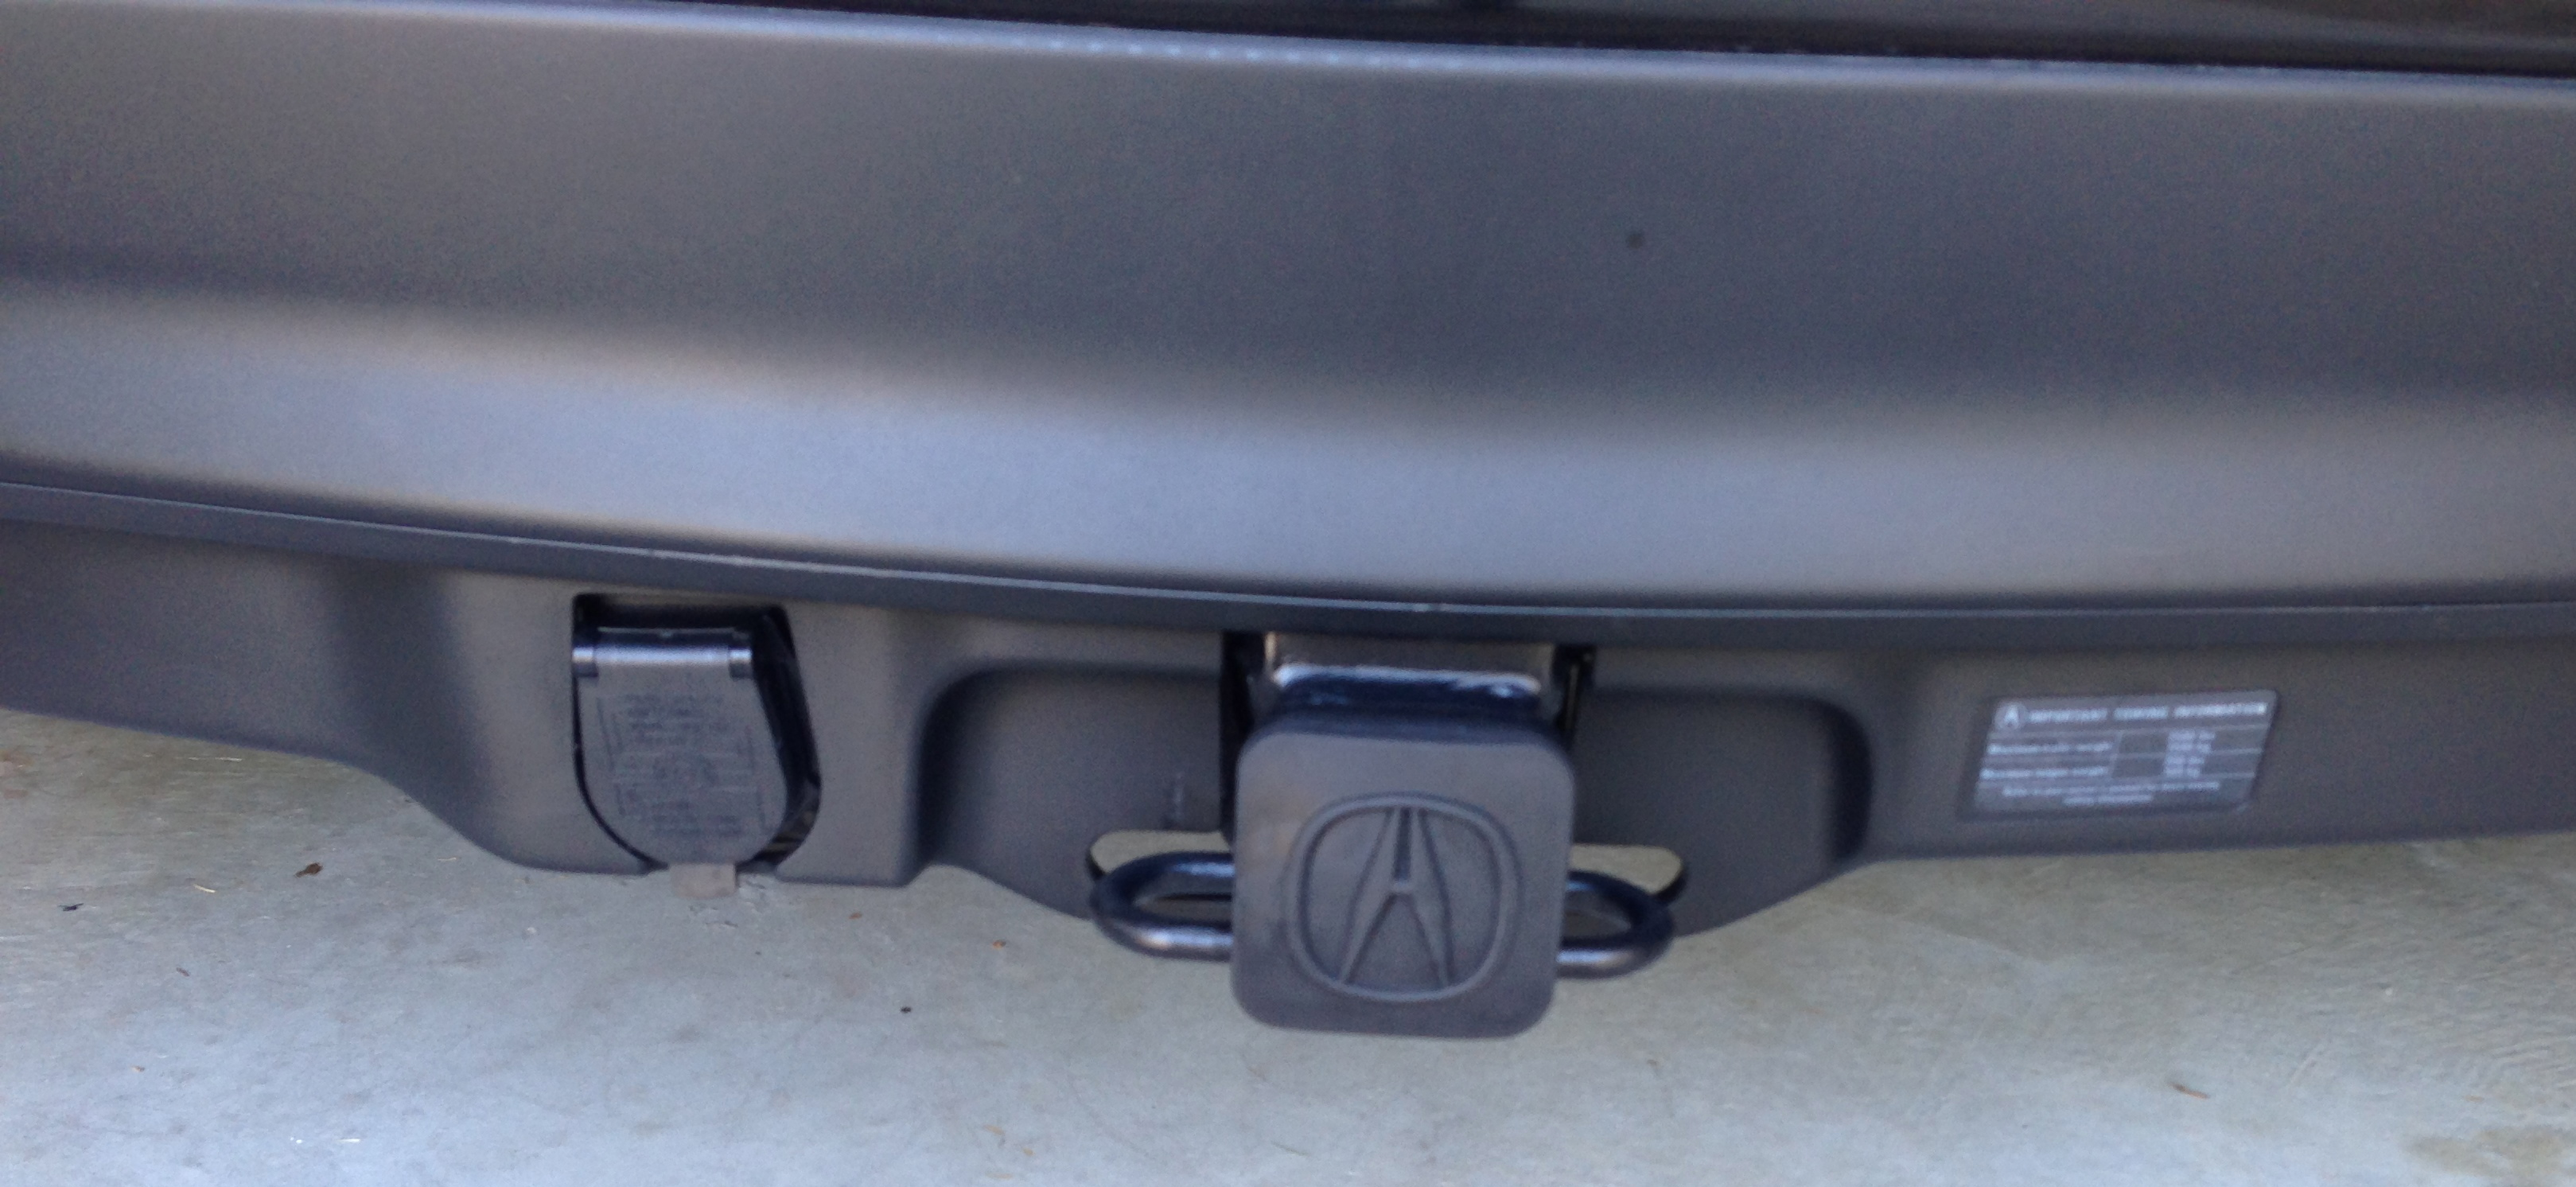 How To Tell If Used Mdx Is Ready For 5000lbs Towing Acura Forum Suv Forums